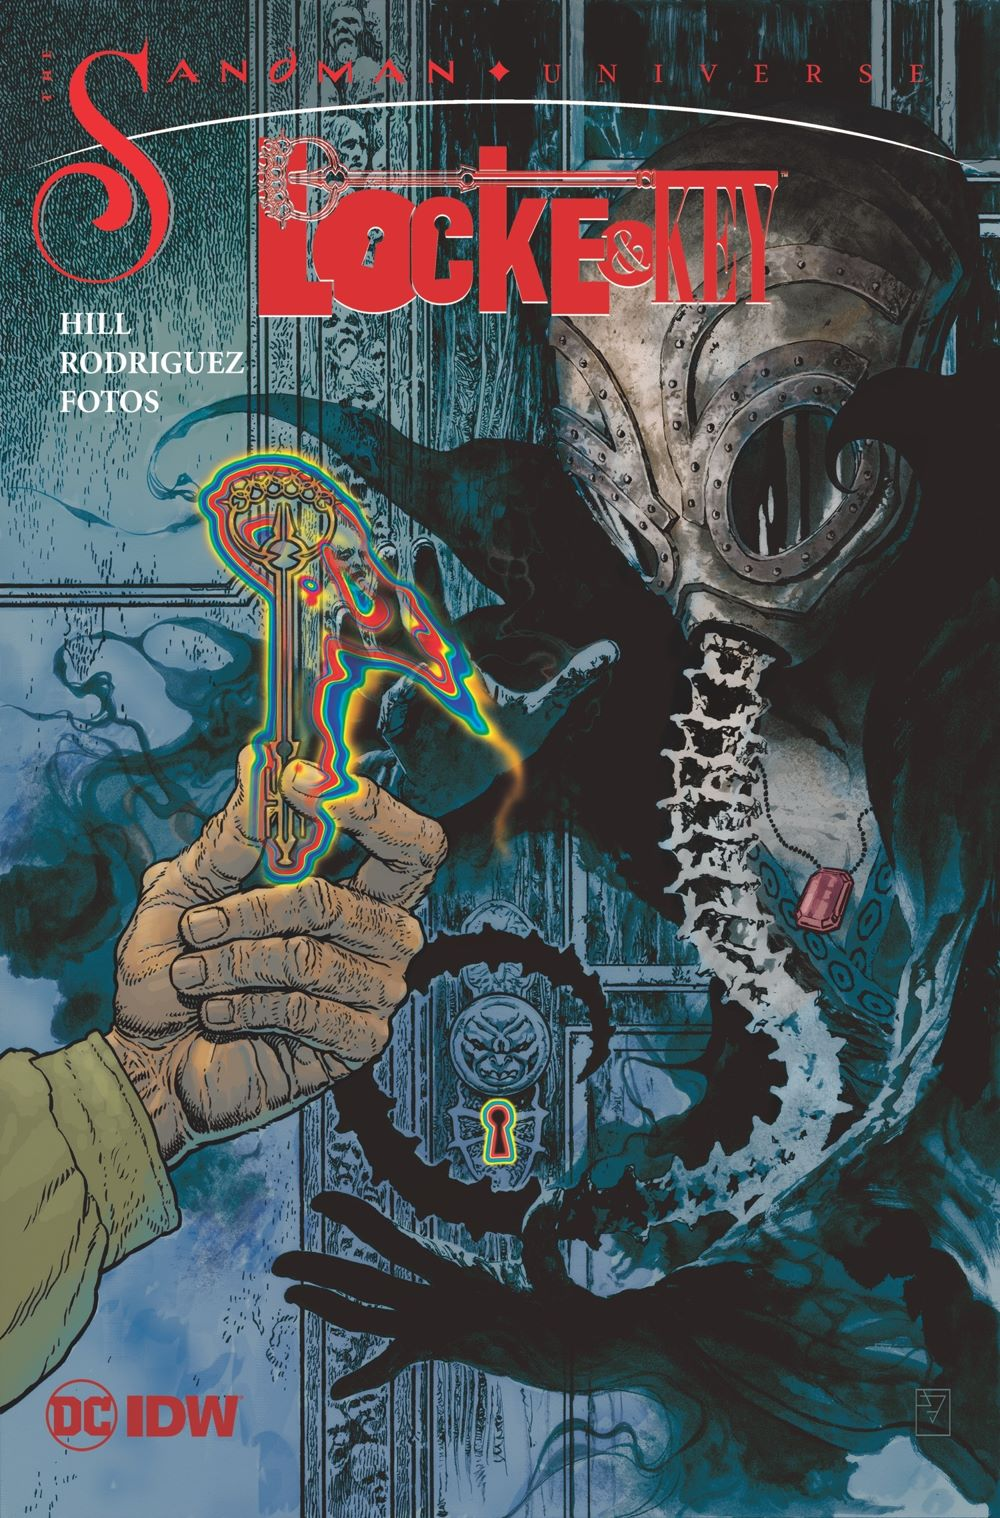 e5532137-e7b0-4c56-9702-abd554711963 First Look at IDW Publishing's LOCKE AND KEY THE SANDMAN UNIVERSE HELL AND GONE #1